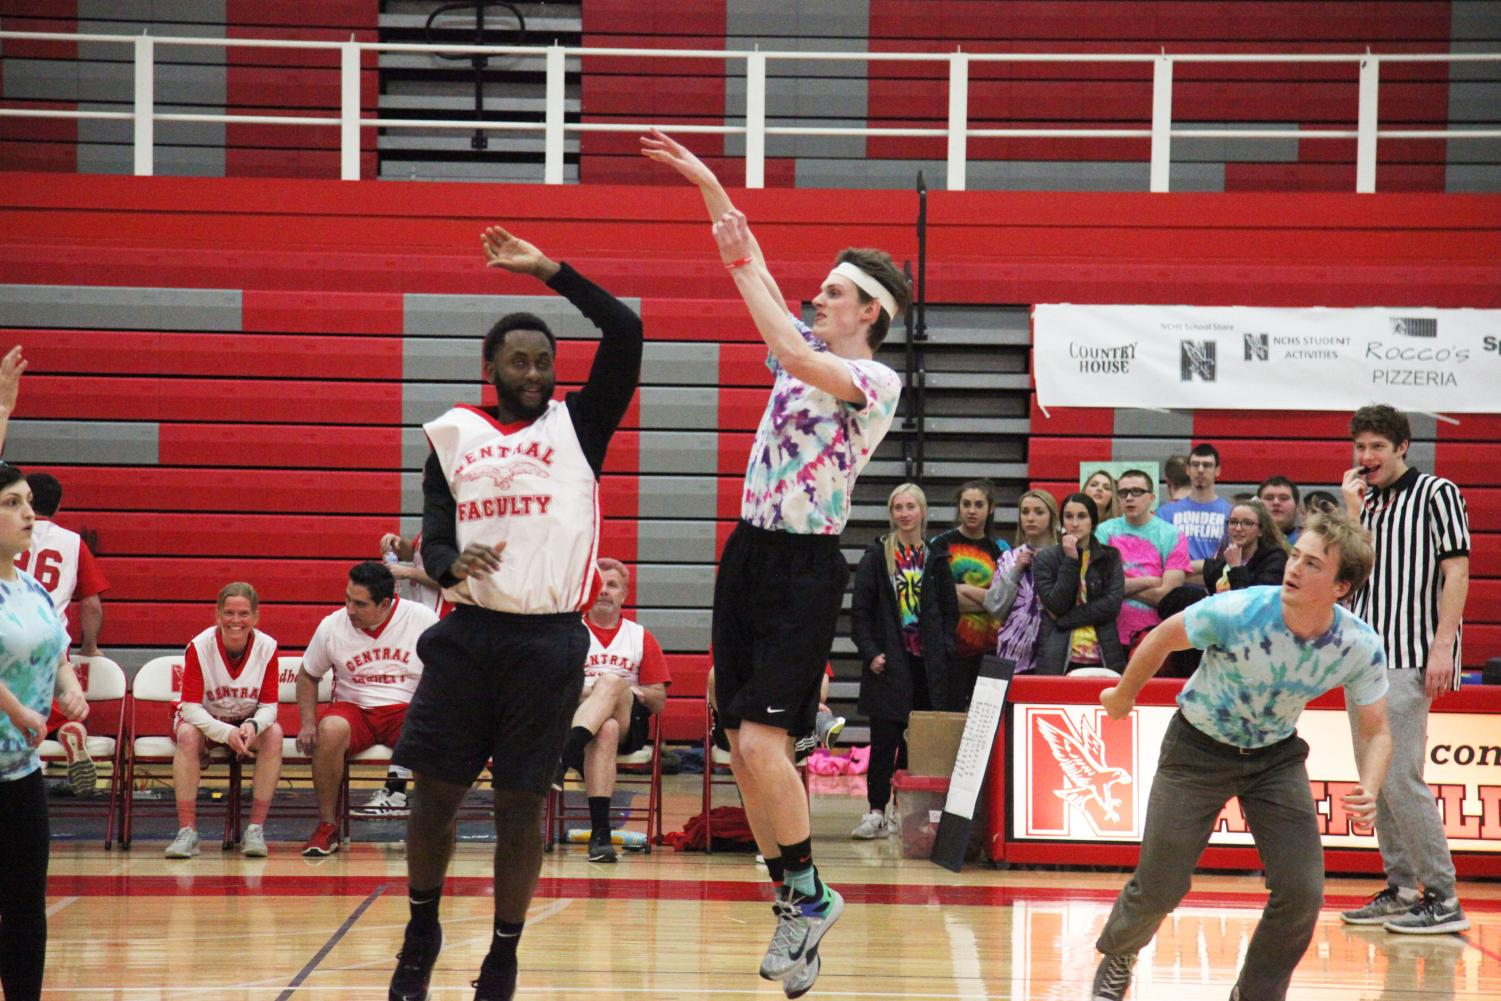 Senior Brian Clune attempts to make a basket during staff versus student basketball game on March 6 at Naperville Central.